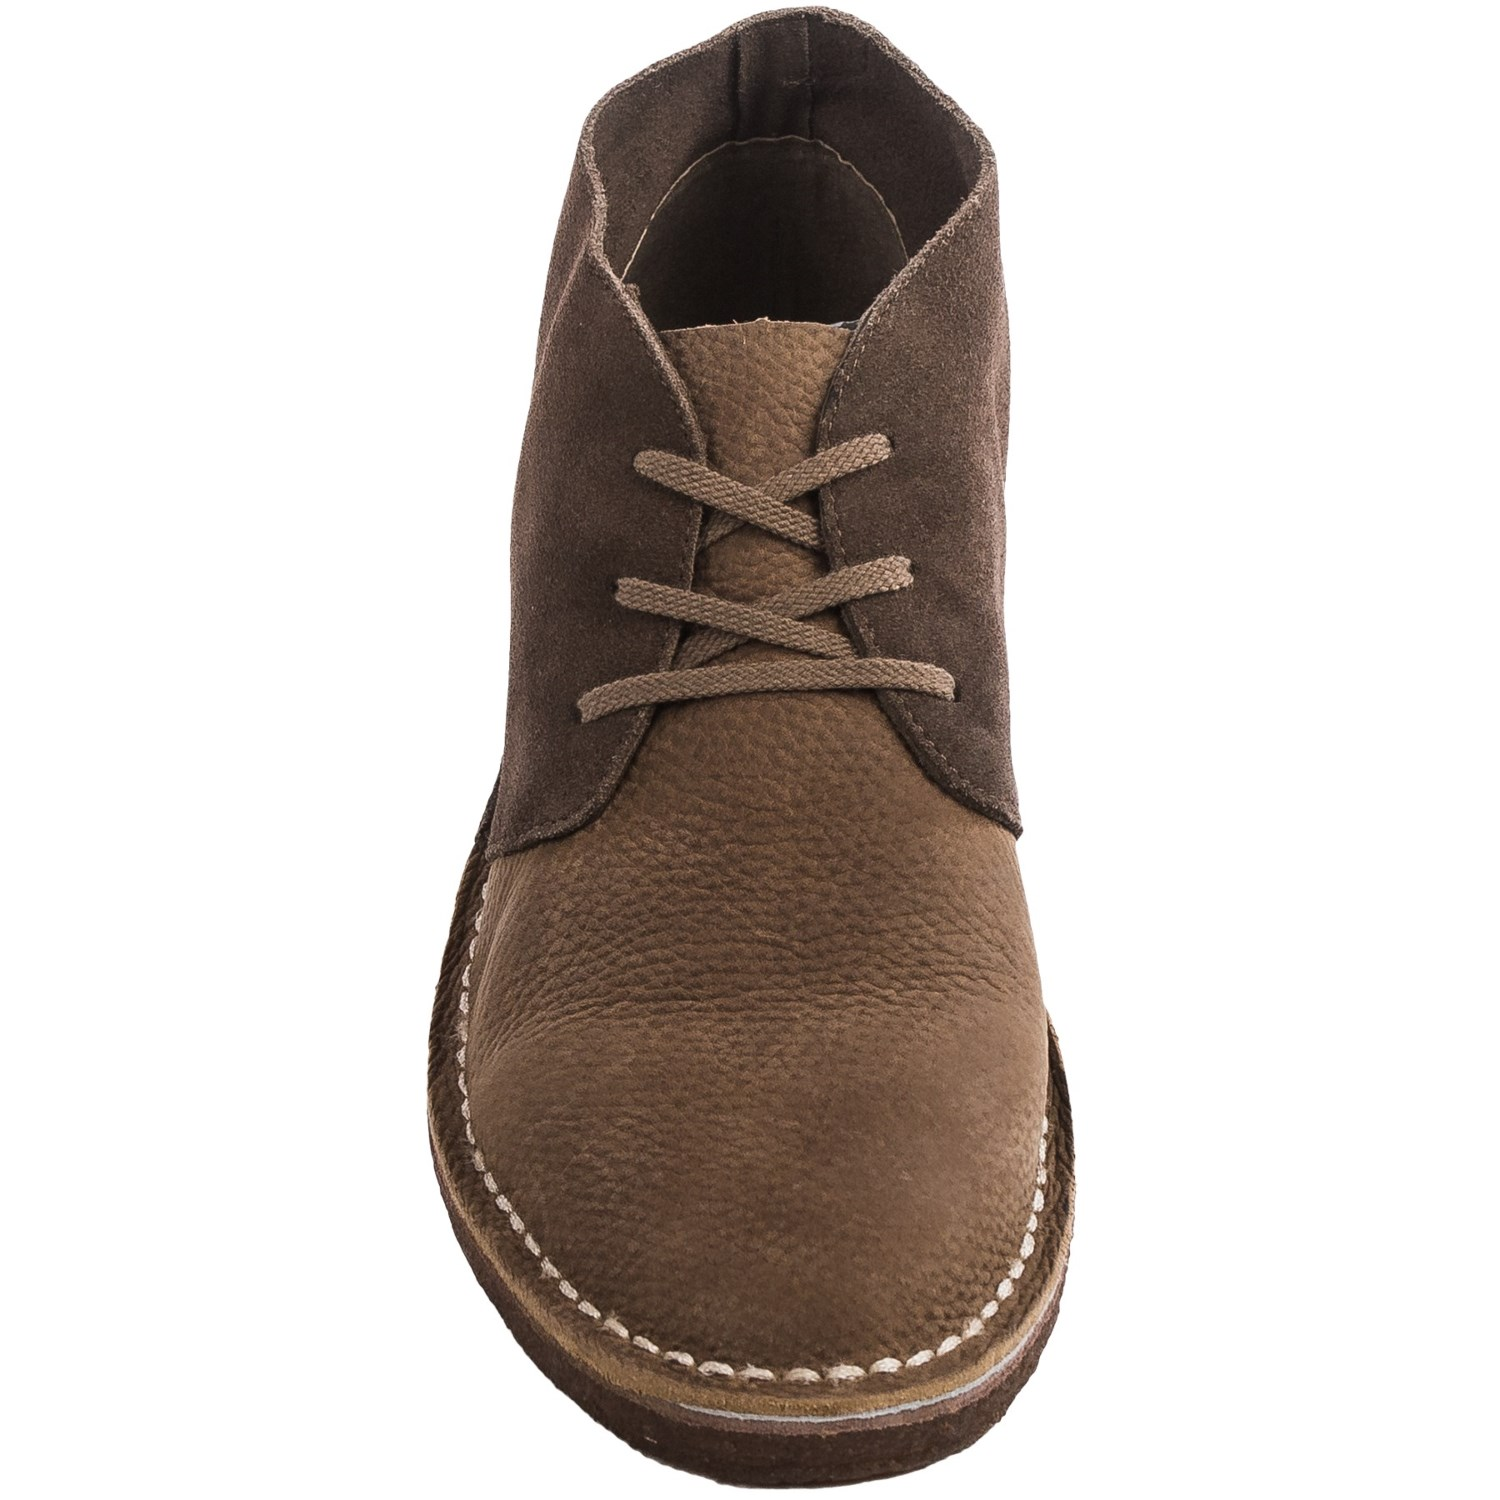 Seavees 12 67 Leather Chukka Boots For Men Save 77